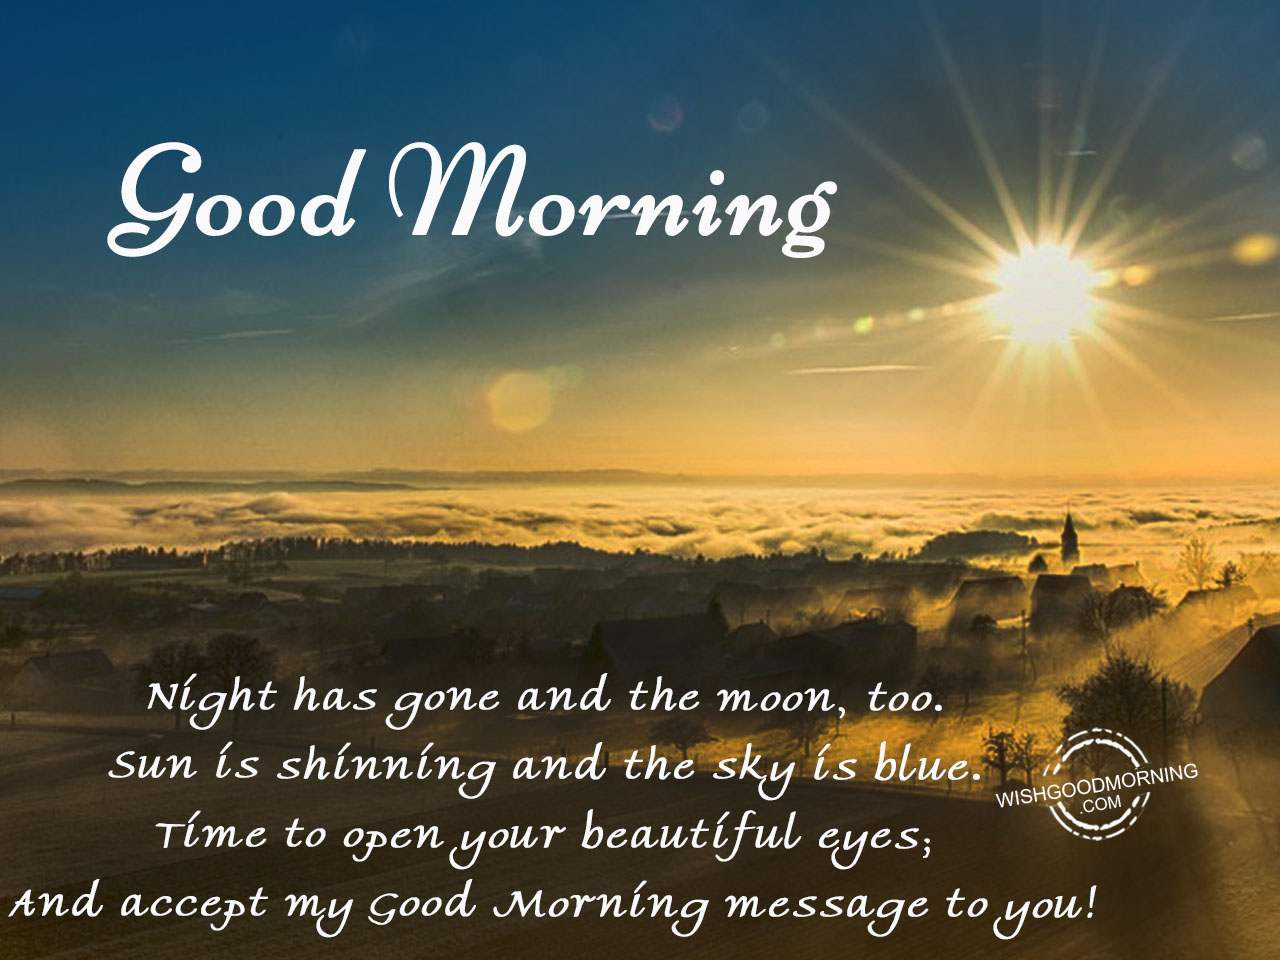 Good Morning Too : Good morning wishes pictures